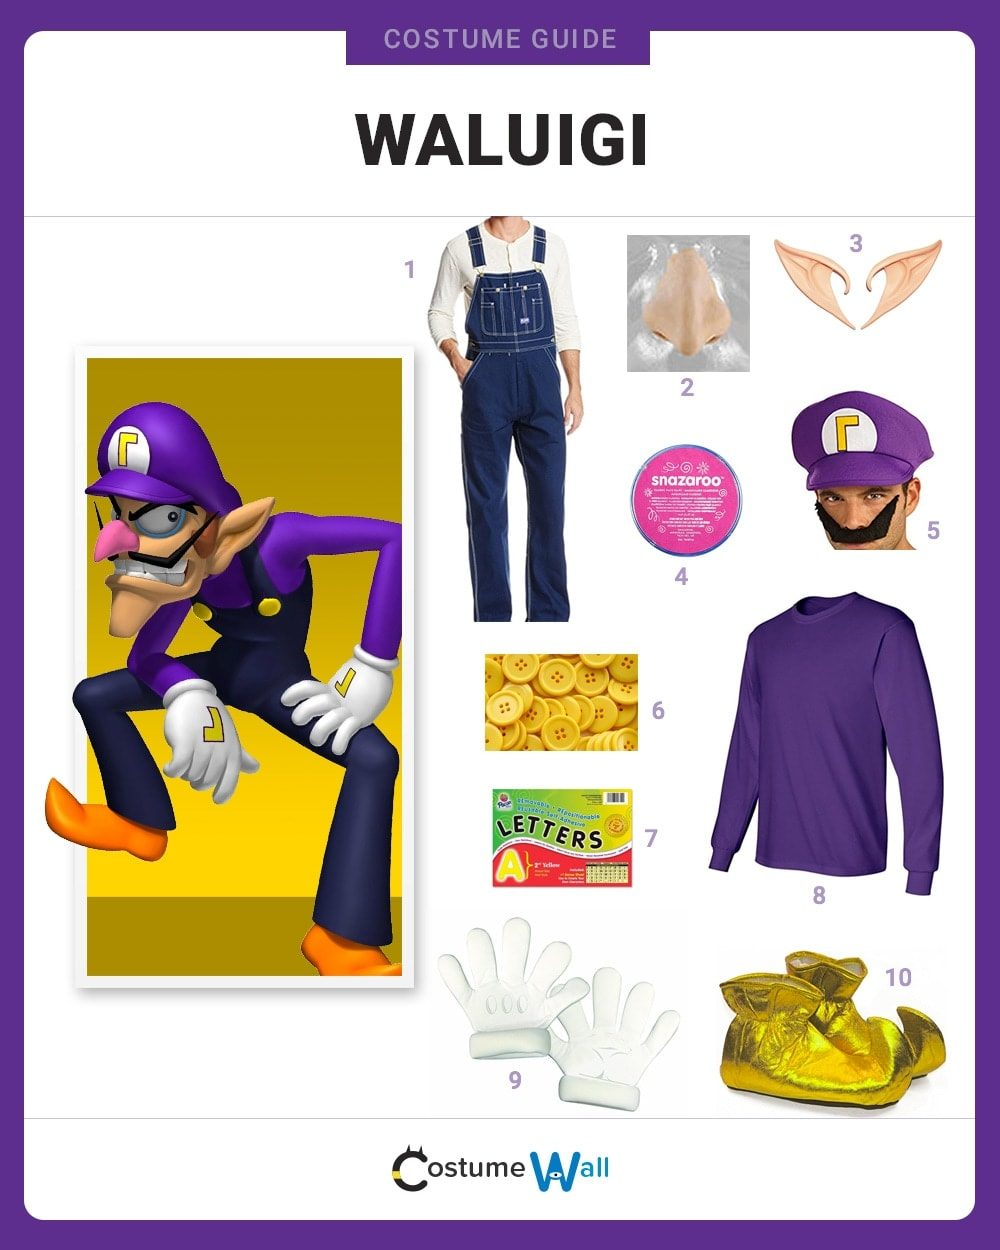 Waluigi Costume Guide